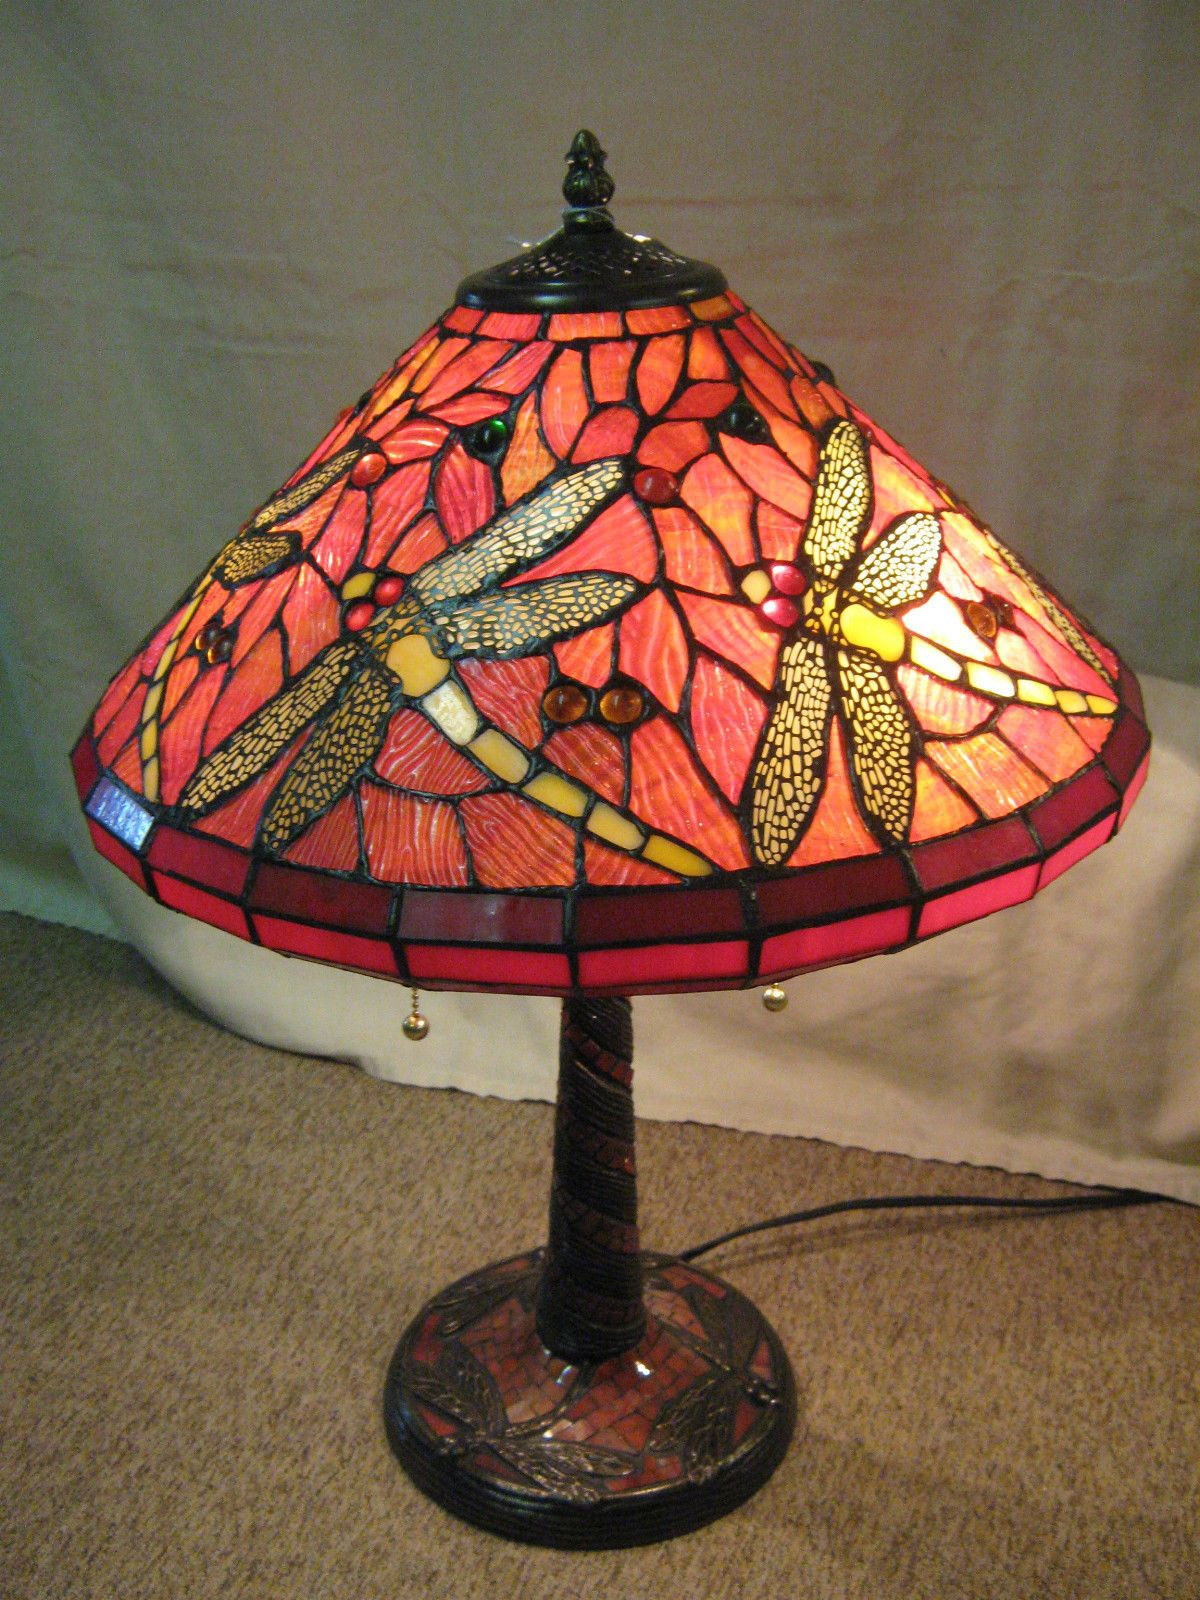 Lampara Tiffany Libelula Tiffany Style Stained Glass Dragonfly Lamp Libélulas Lámpara